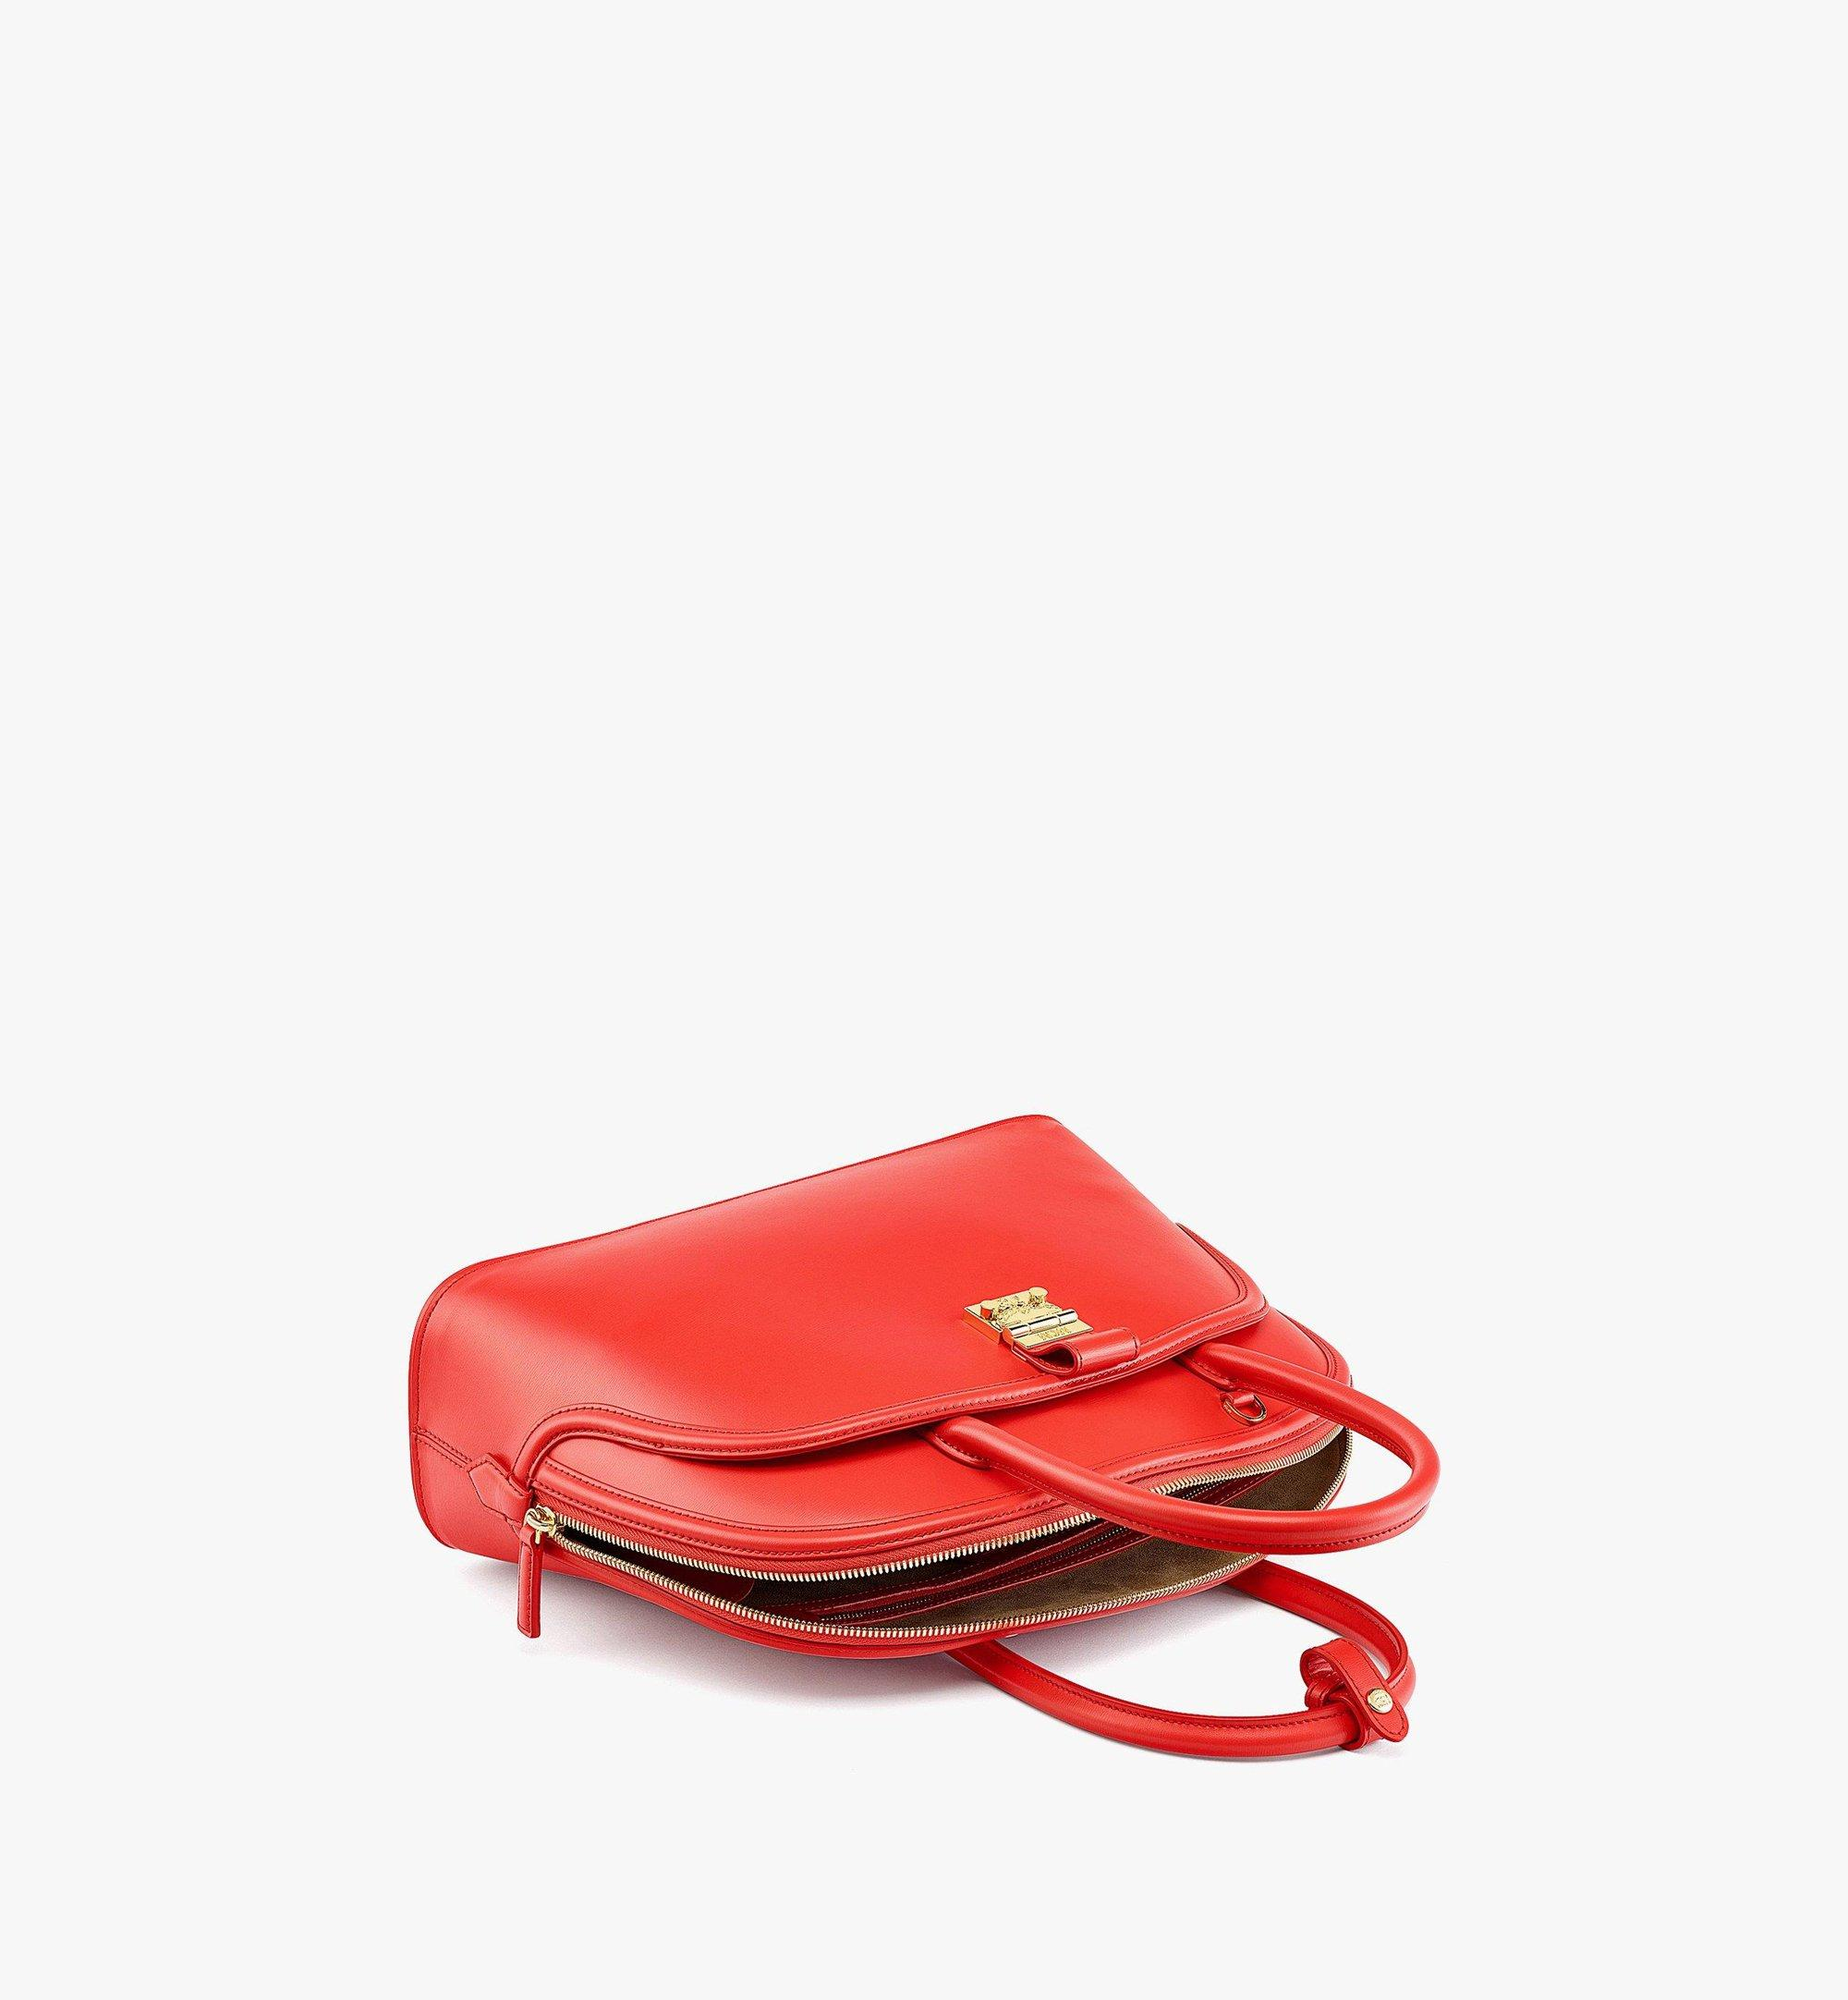 MCM Anna Tote in Spanish Leather Red MWTBSNN03R8001 Alternate View 2